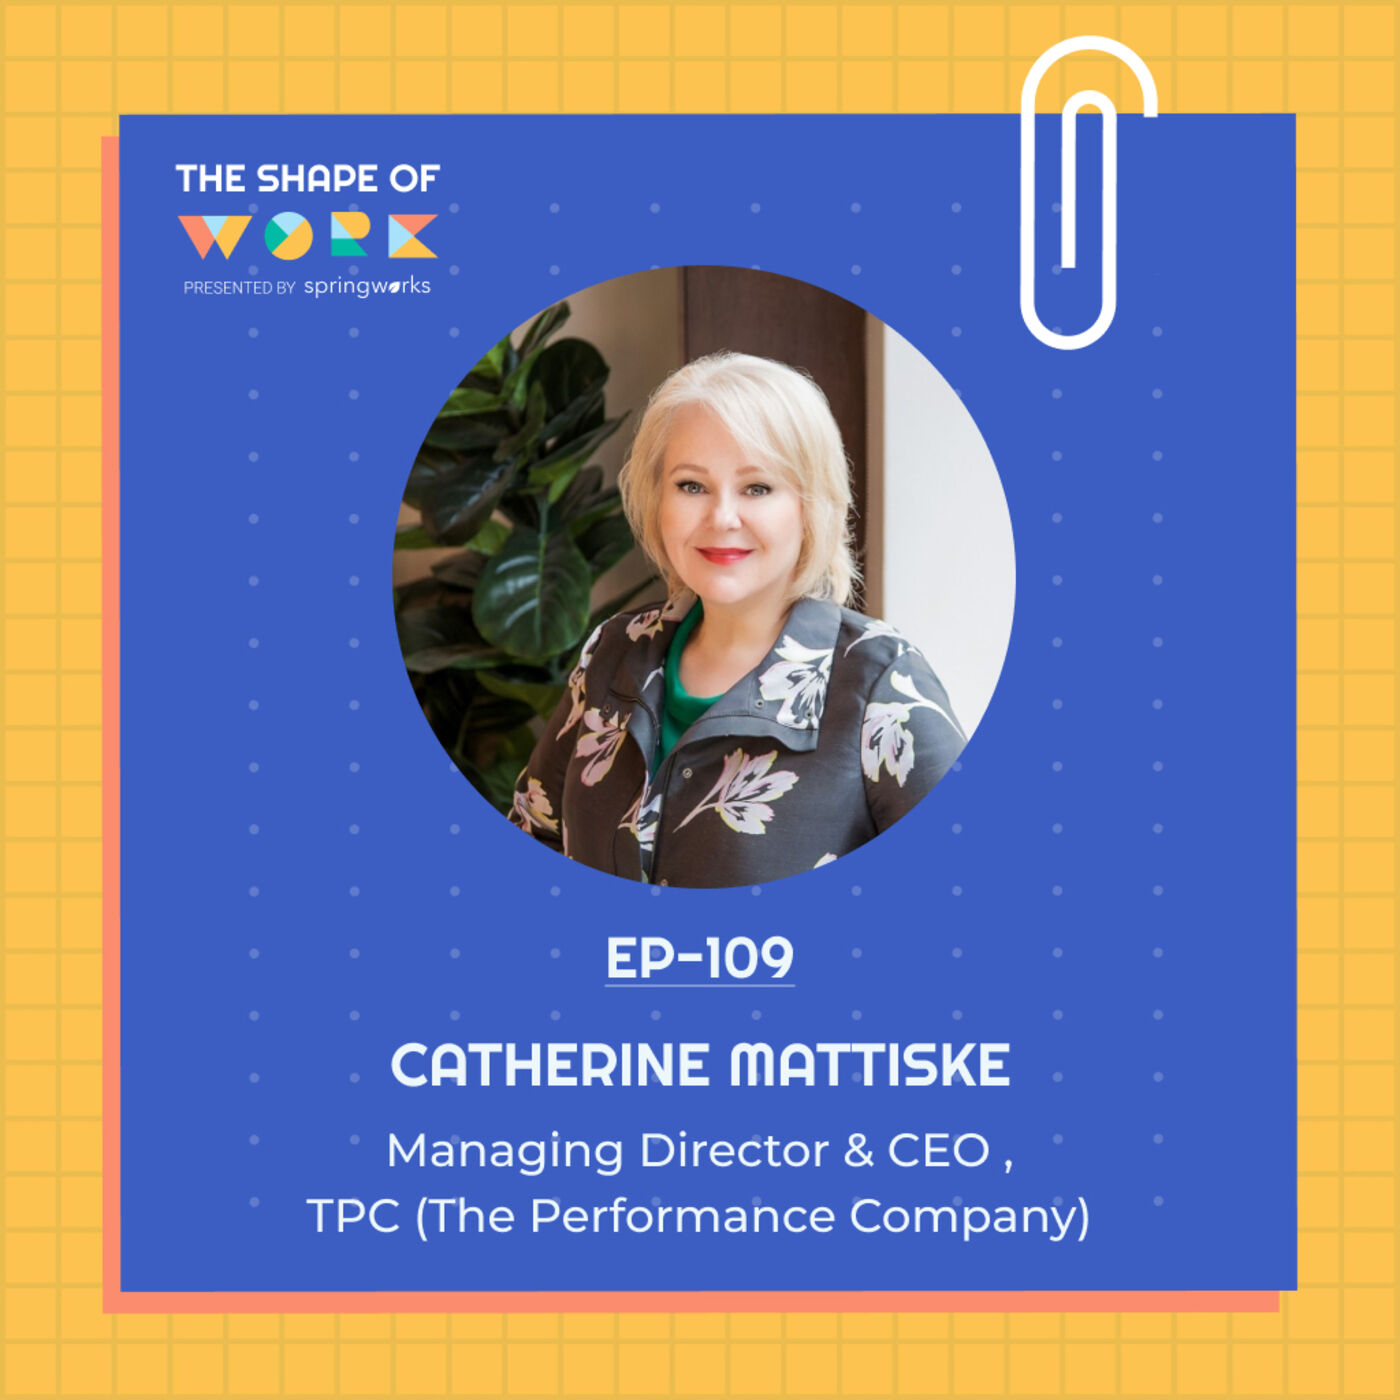 #109: Catherine Mattiske on Instructional Design principles, feedback loops for Learning and Development, and virtual learning environments